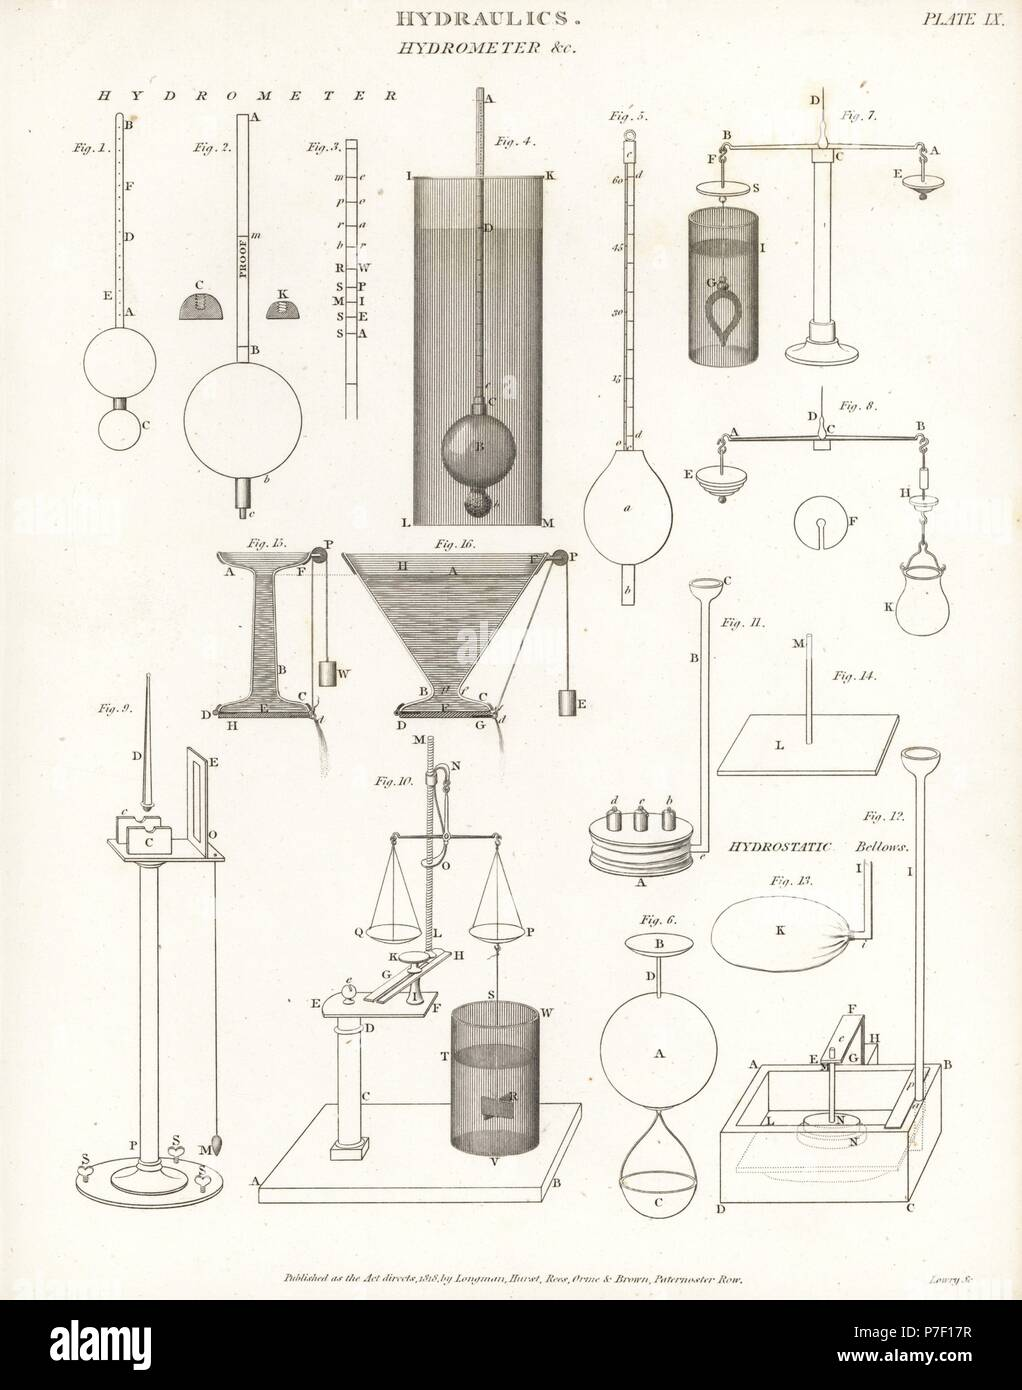 Types of hydrometers, 18th century, by Clark 2,3, John Theophilus Desaguliers 4, Jean-Andre De Luc 5, and William Nicholson 6. Copperplate engraving by Wilson Lowry from Abraham Rees' Cyclopedia or Universal Dictionary of Arts, Sciences and Literature, Longman, Hurst, Rees, Orme and Brown, London, 1818. - Stock Image